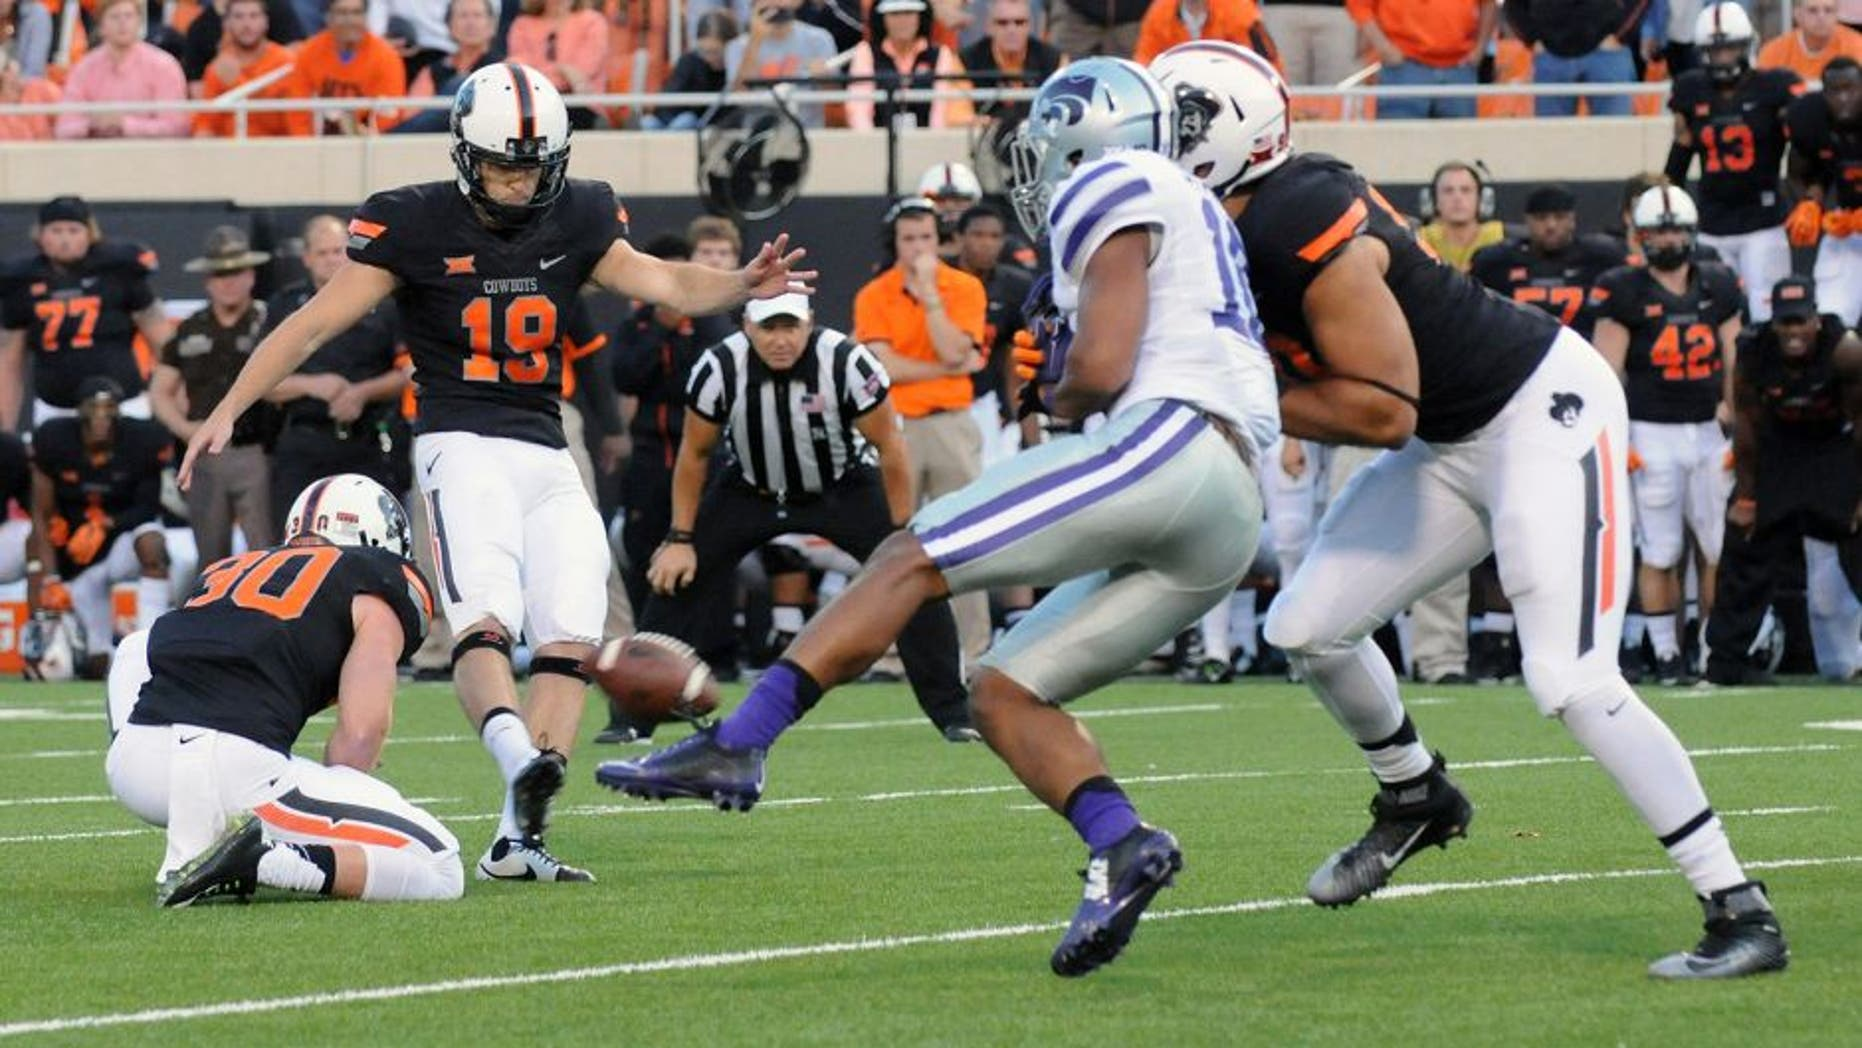 Oklahoma State defensive end Trace Clark, right, defends against Kansas State defensive back Donnie Starks, center right, while Oklahoma State kicker Ben Grogan, center left, kicks the winning field goal held by Oklahoma State holder Bryant Reber, left, during the final seconds of an NCAA football game in Stillwater, Okla., Saturday, Oct. 3, 2015. (AP Photo/Brody Schmidt)